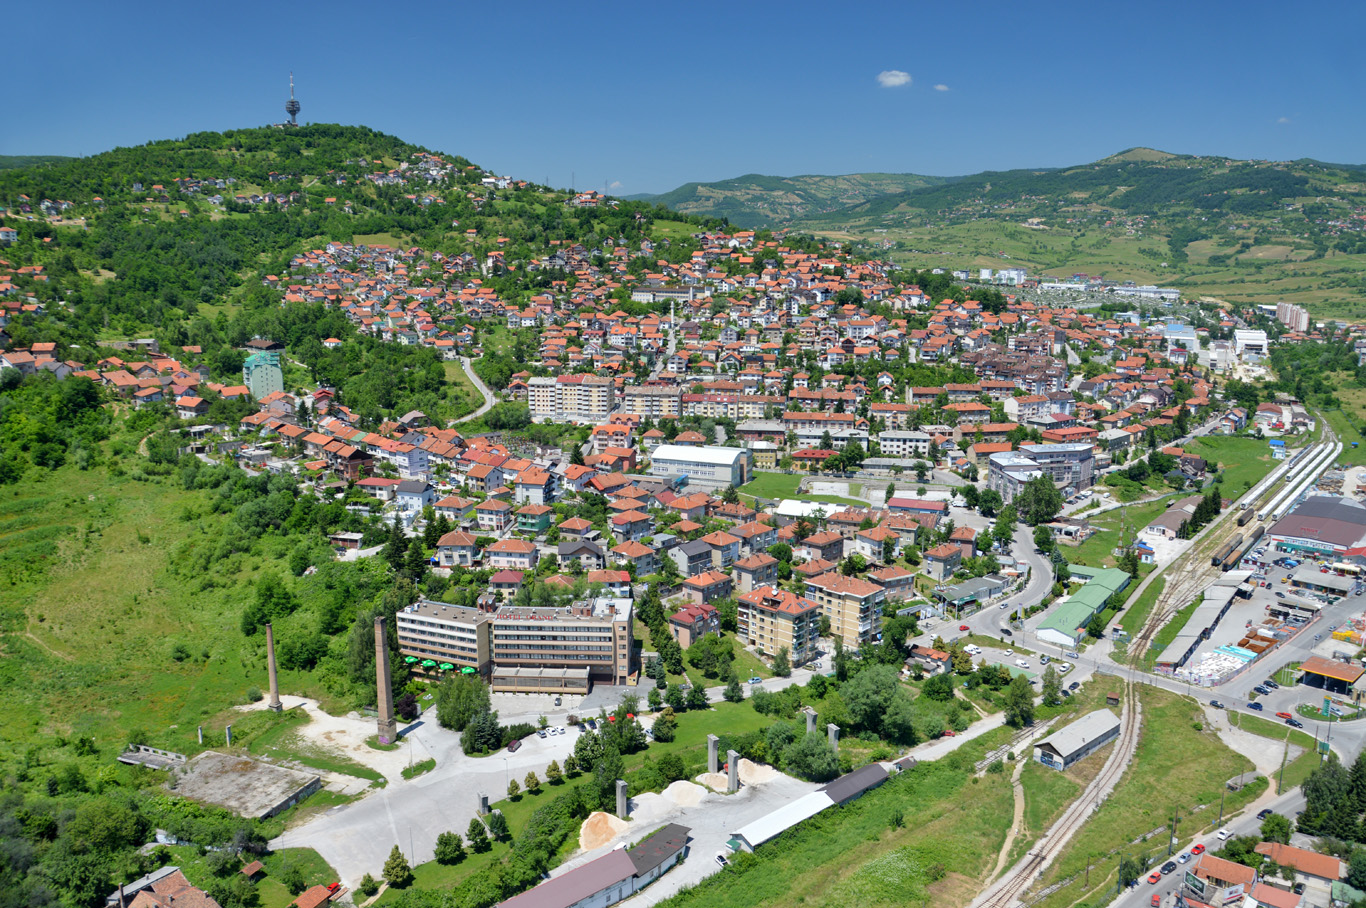 Red roofs and green hills of Sarajevo